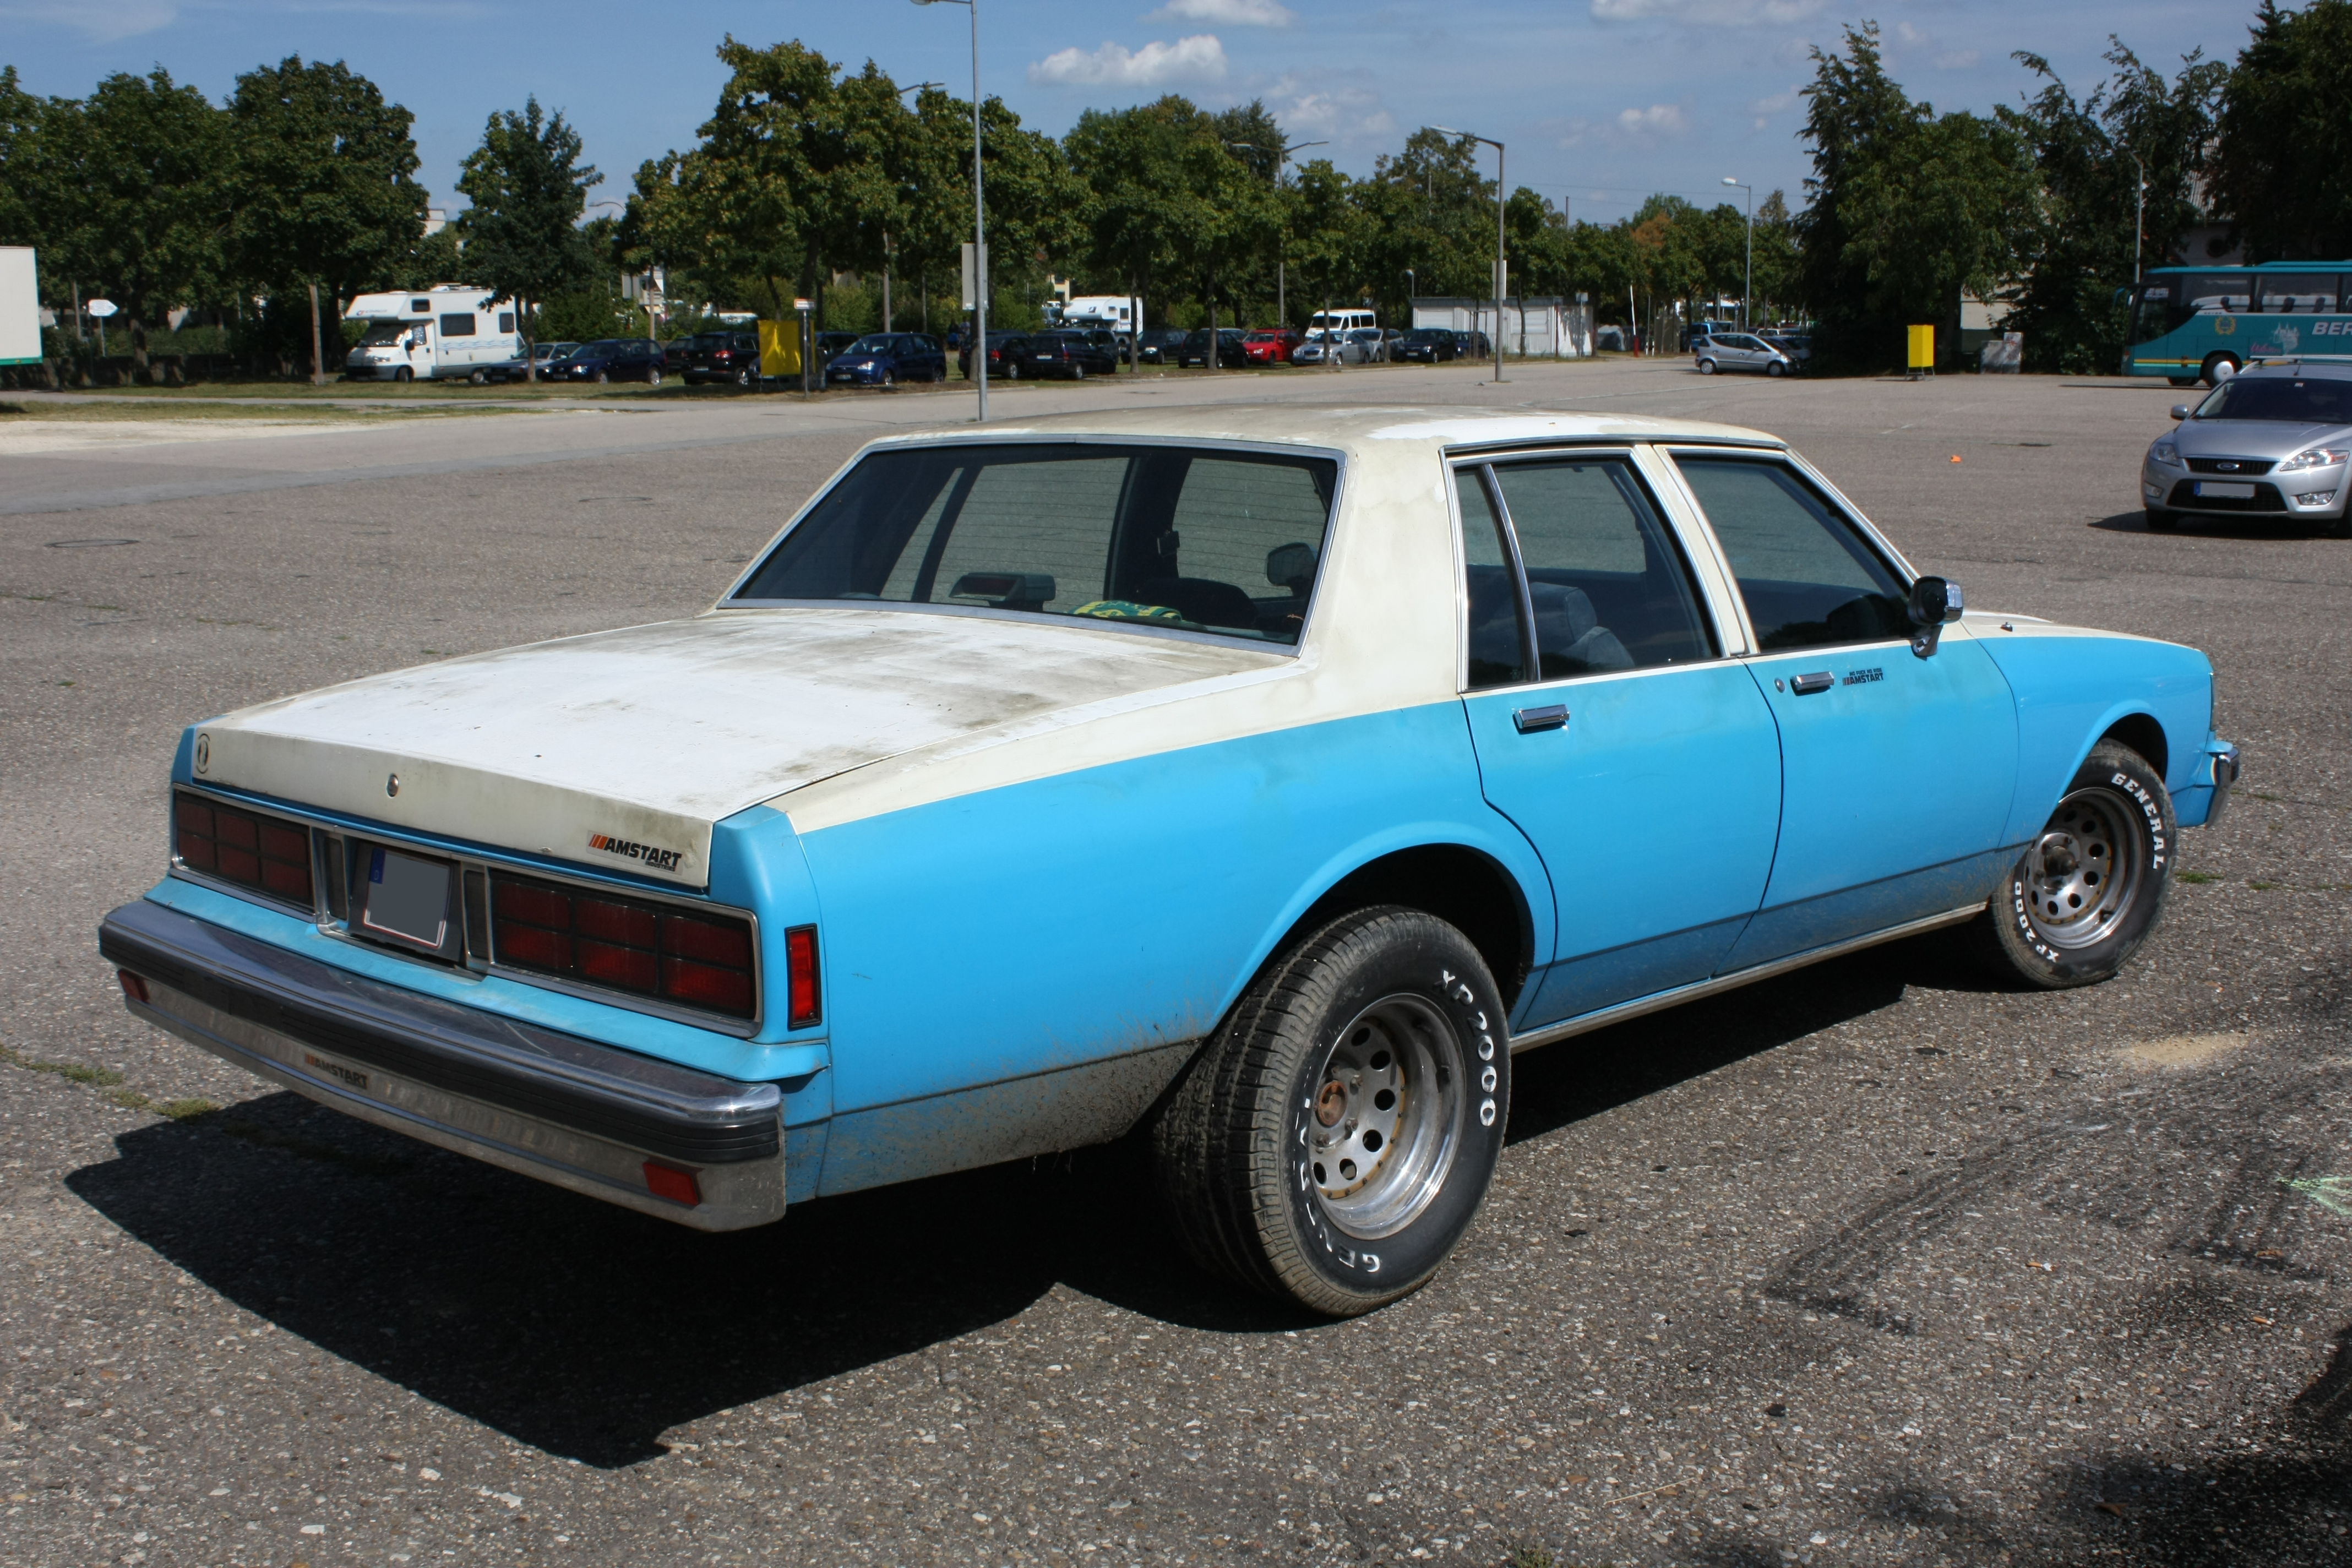 Vehicle 486007 Chevrolet Caprice Classic 1980 further File Chevrolet Caprice 1980s Heck additionally File Chevrolet Monte Carlo  Cruisin' At The Boardwalk '10 furthermore SL2zHvGIkV8 additionally Impala. on 1980 chevy impala chevrolet